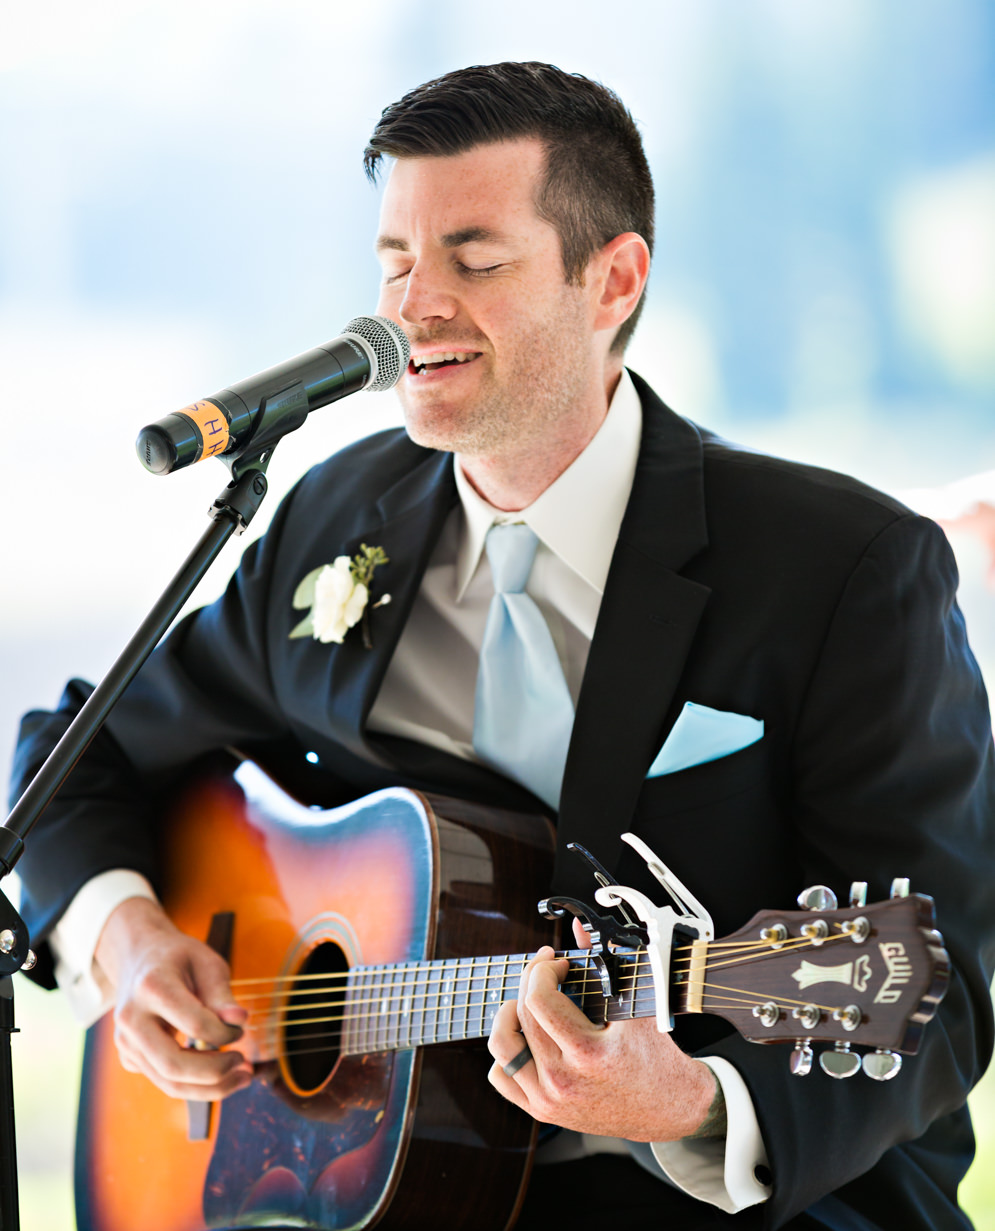 big-sky-resort-wedding-brother-sings-during-ceremony.jpg